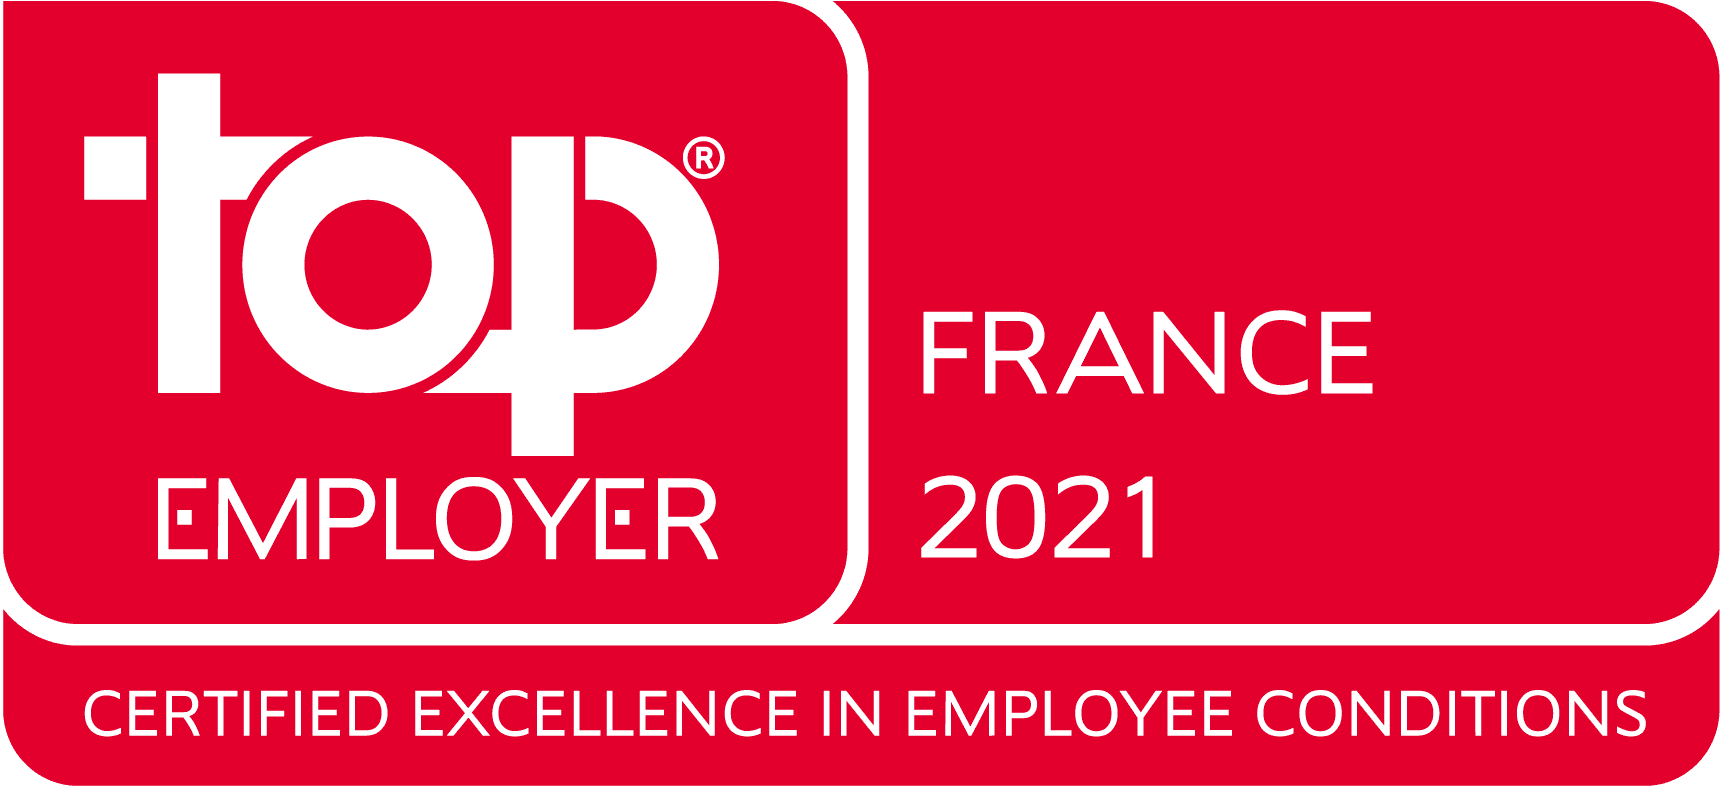 Top-Employer-France-2021